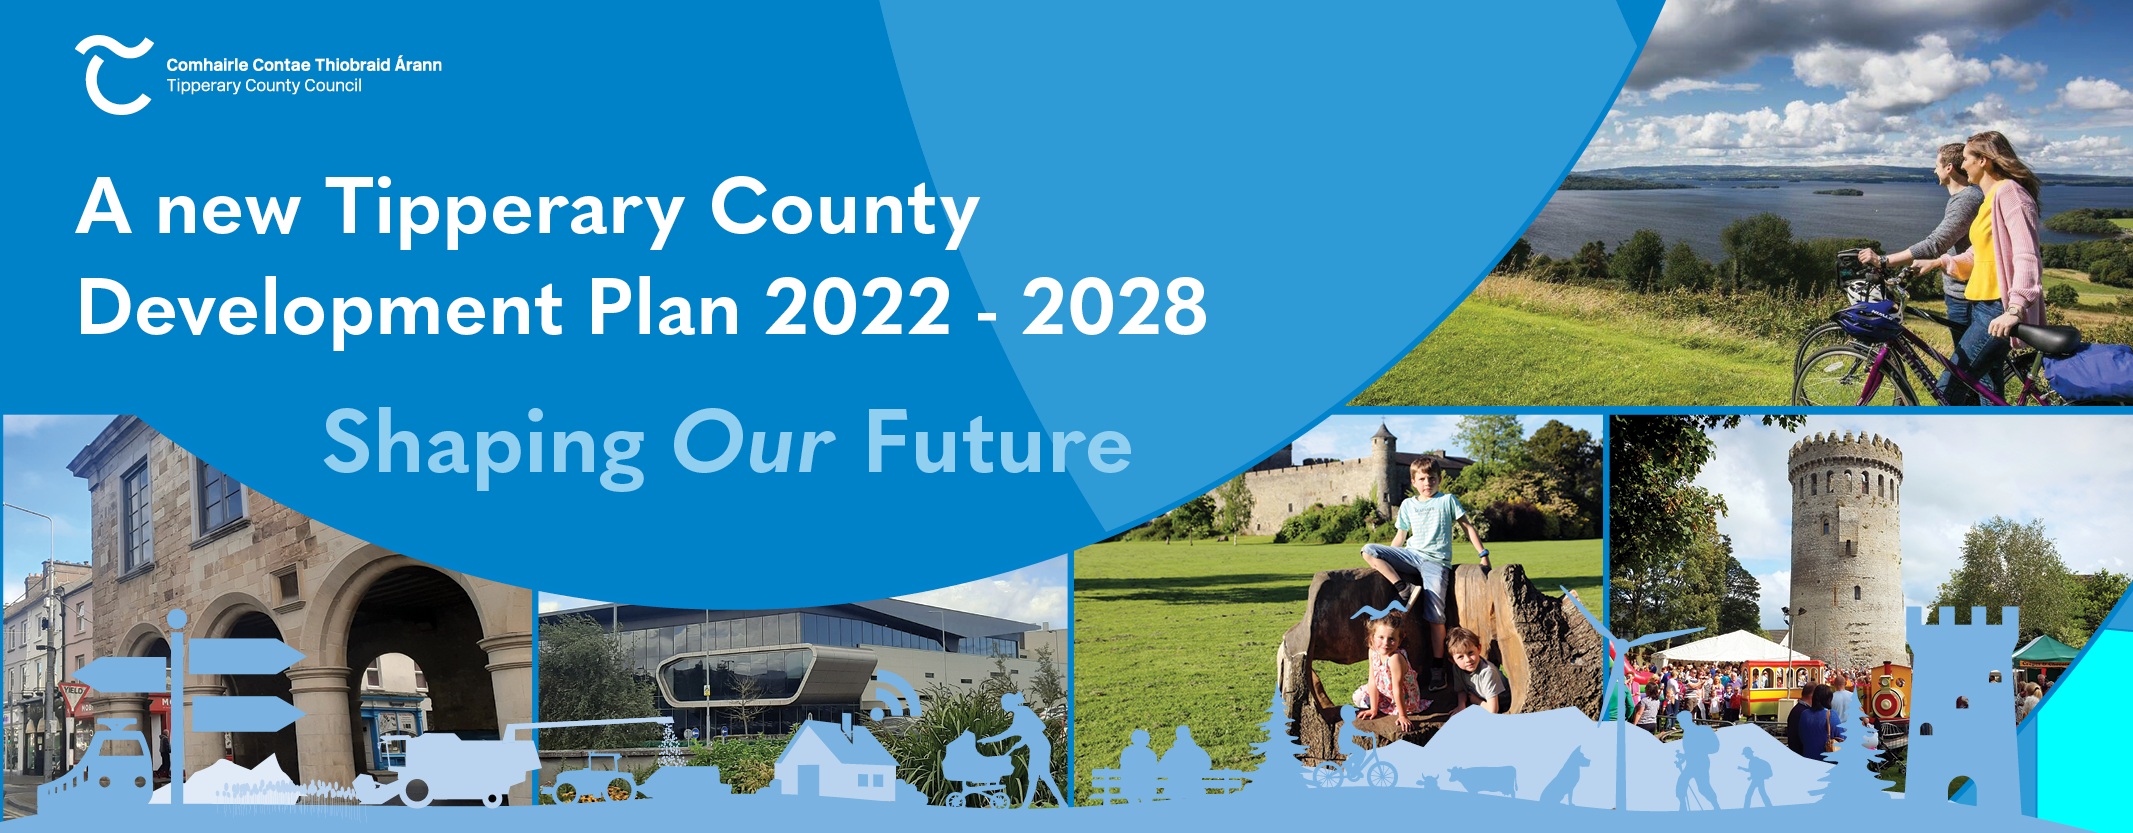 Tipperary County Council has commenced the preparation of a new County Development Plan for Tipperary.